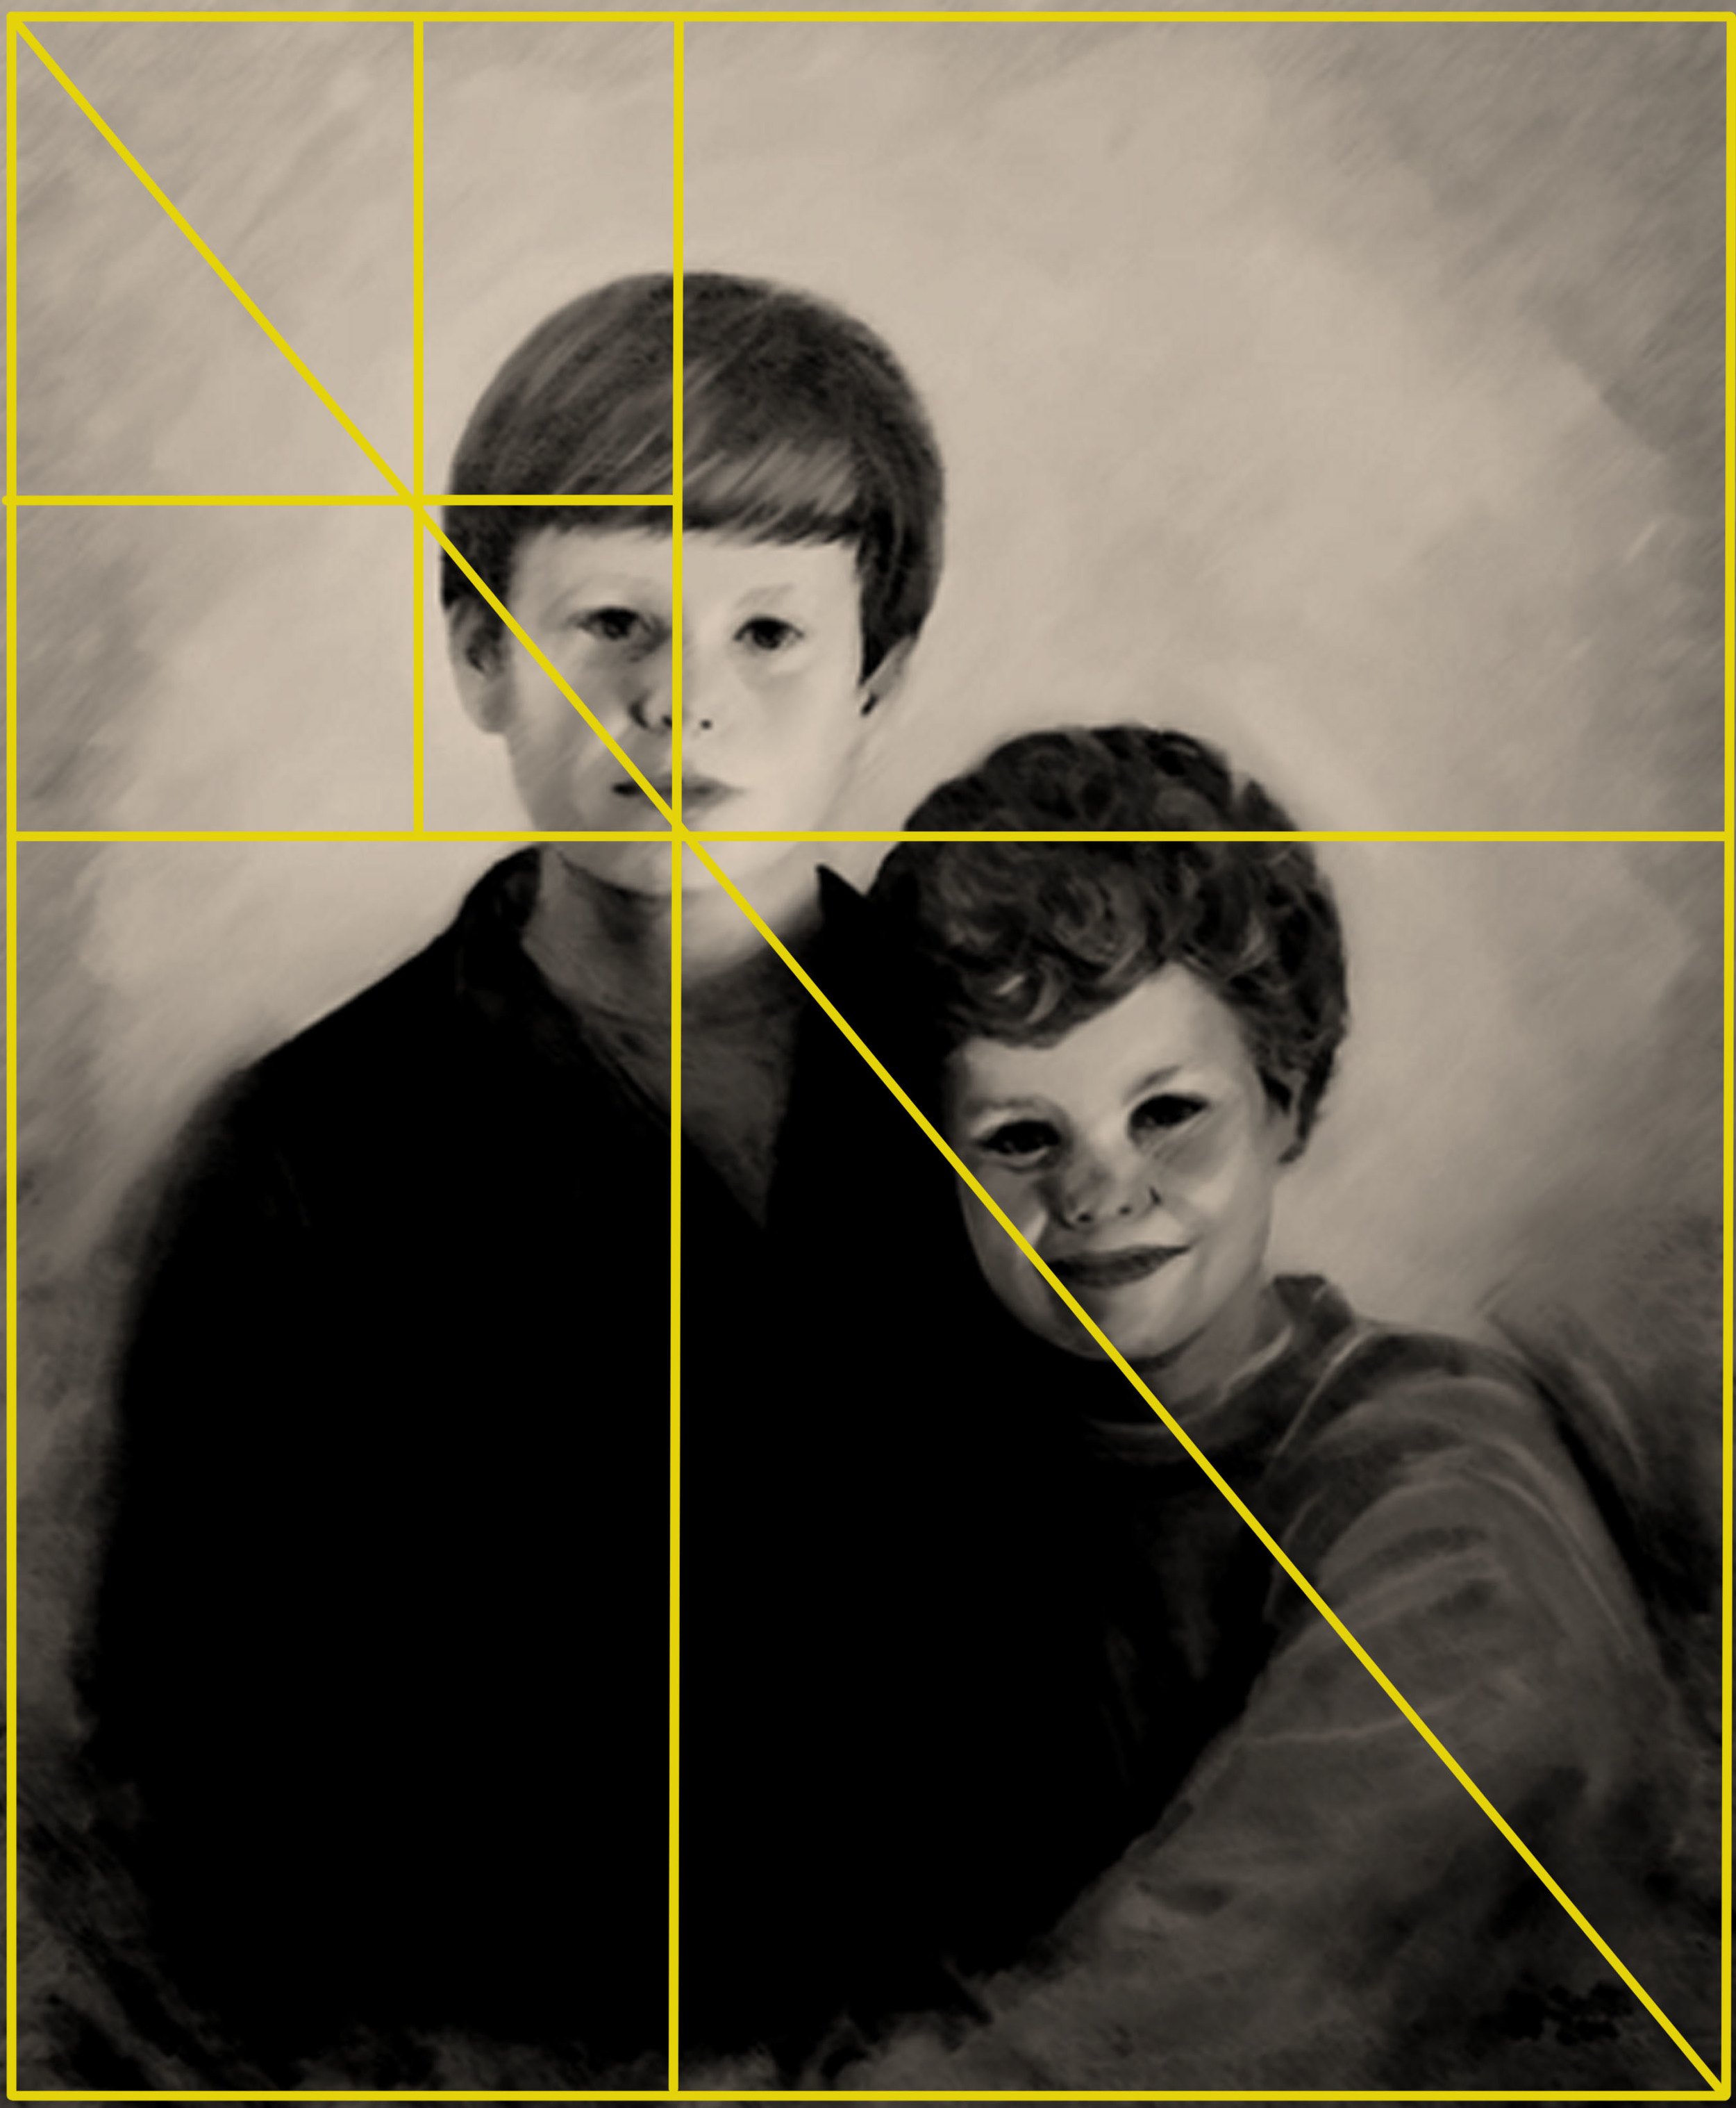 Variation of the Golden Ratio